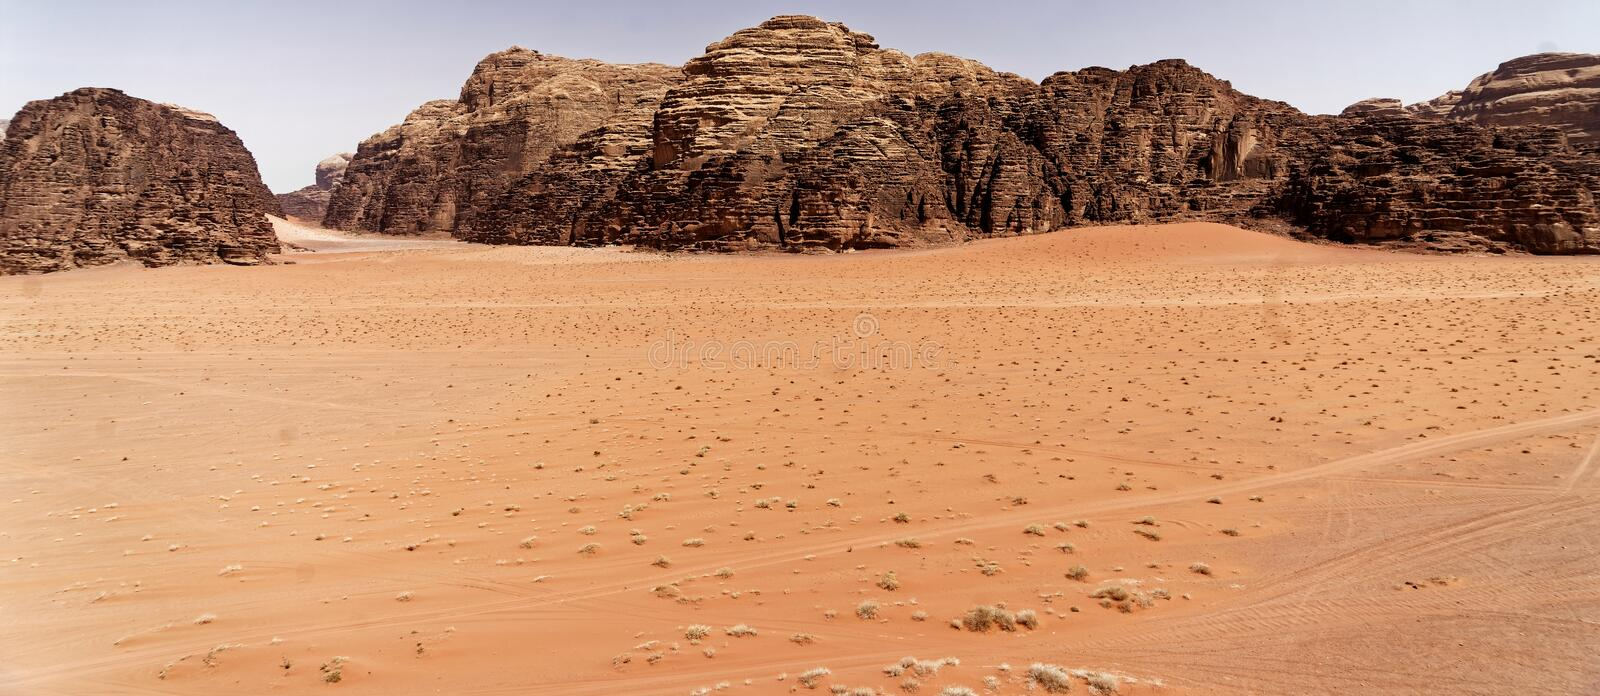 The emptiness of the great desert in the nature reserve of Wadi Rum, with large mountains of red sandstone in the background and t royalty free stock photo